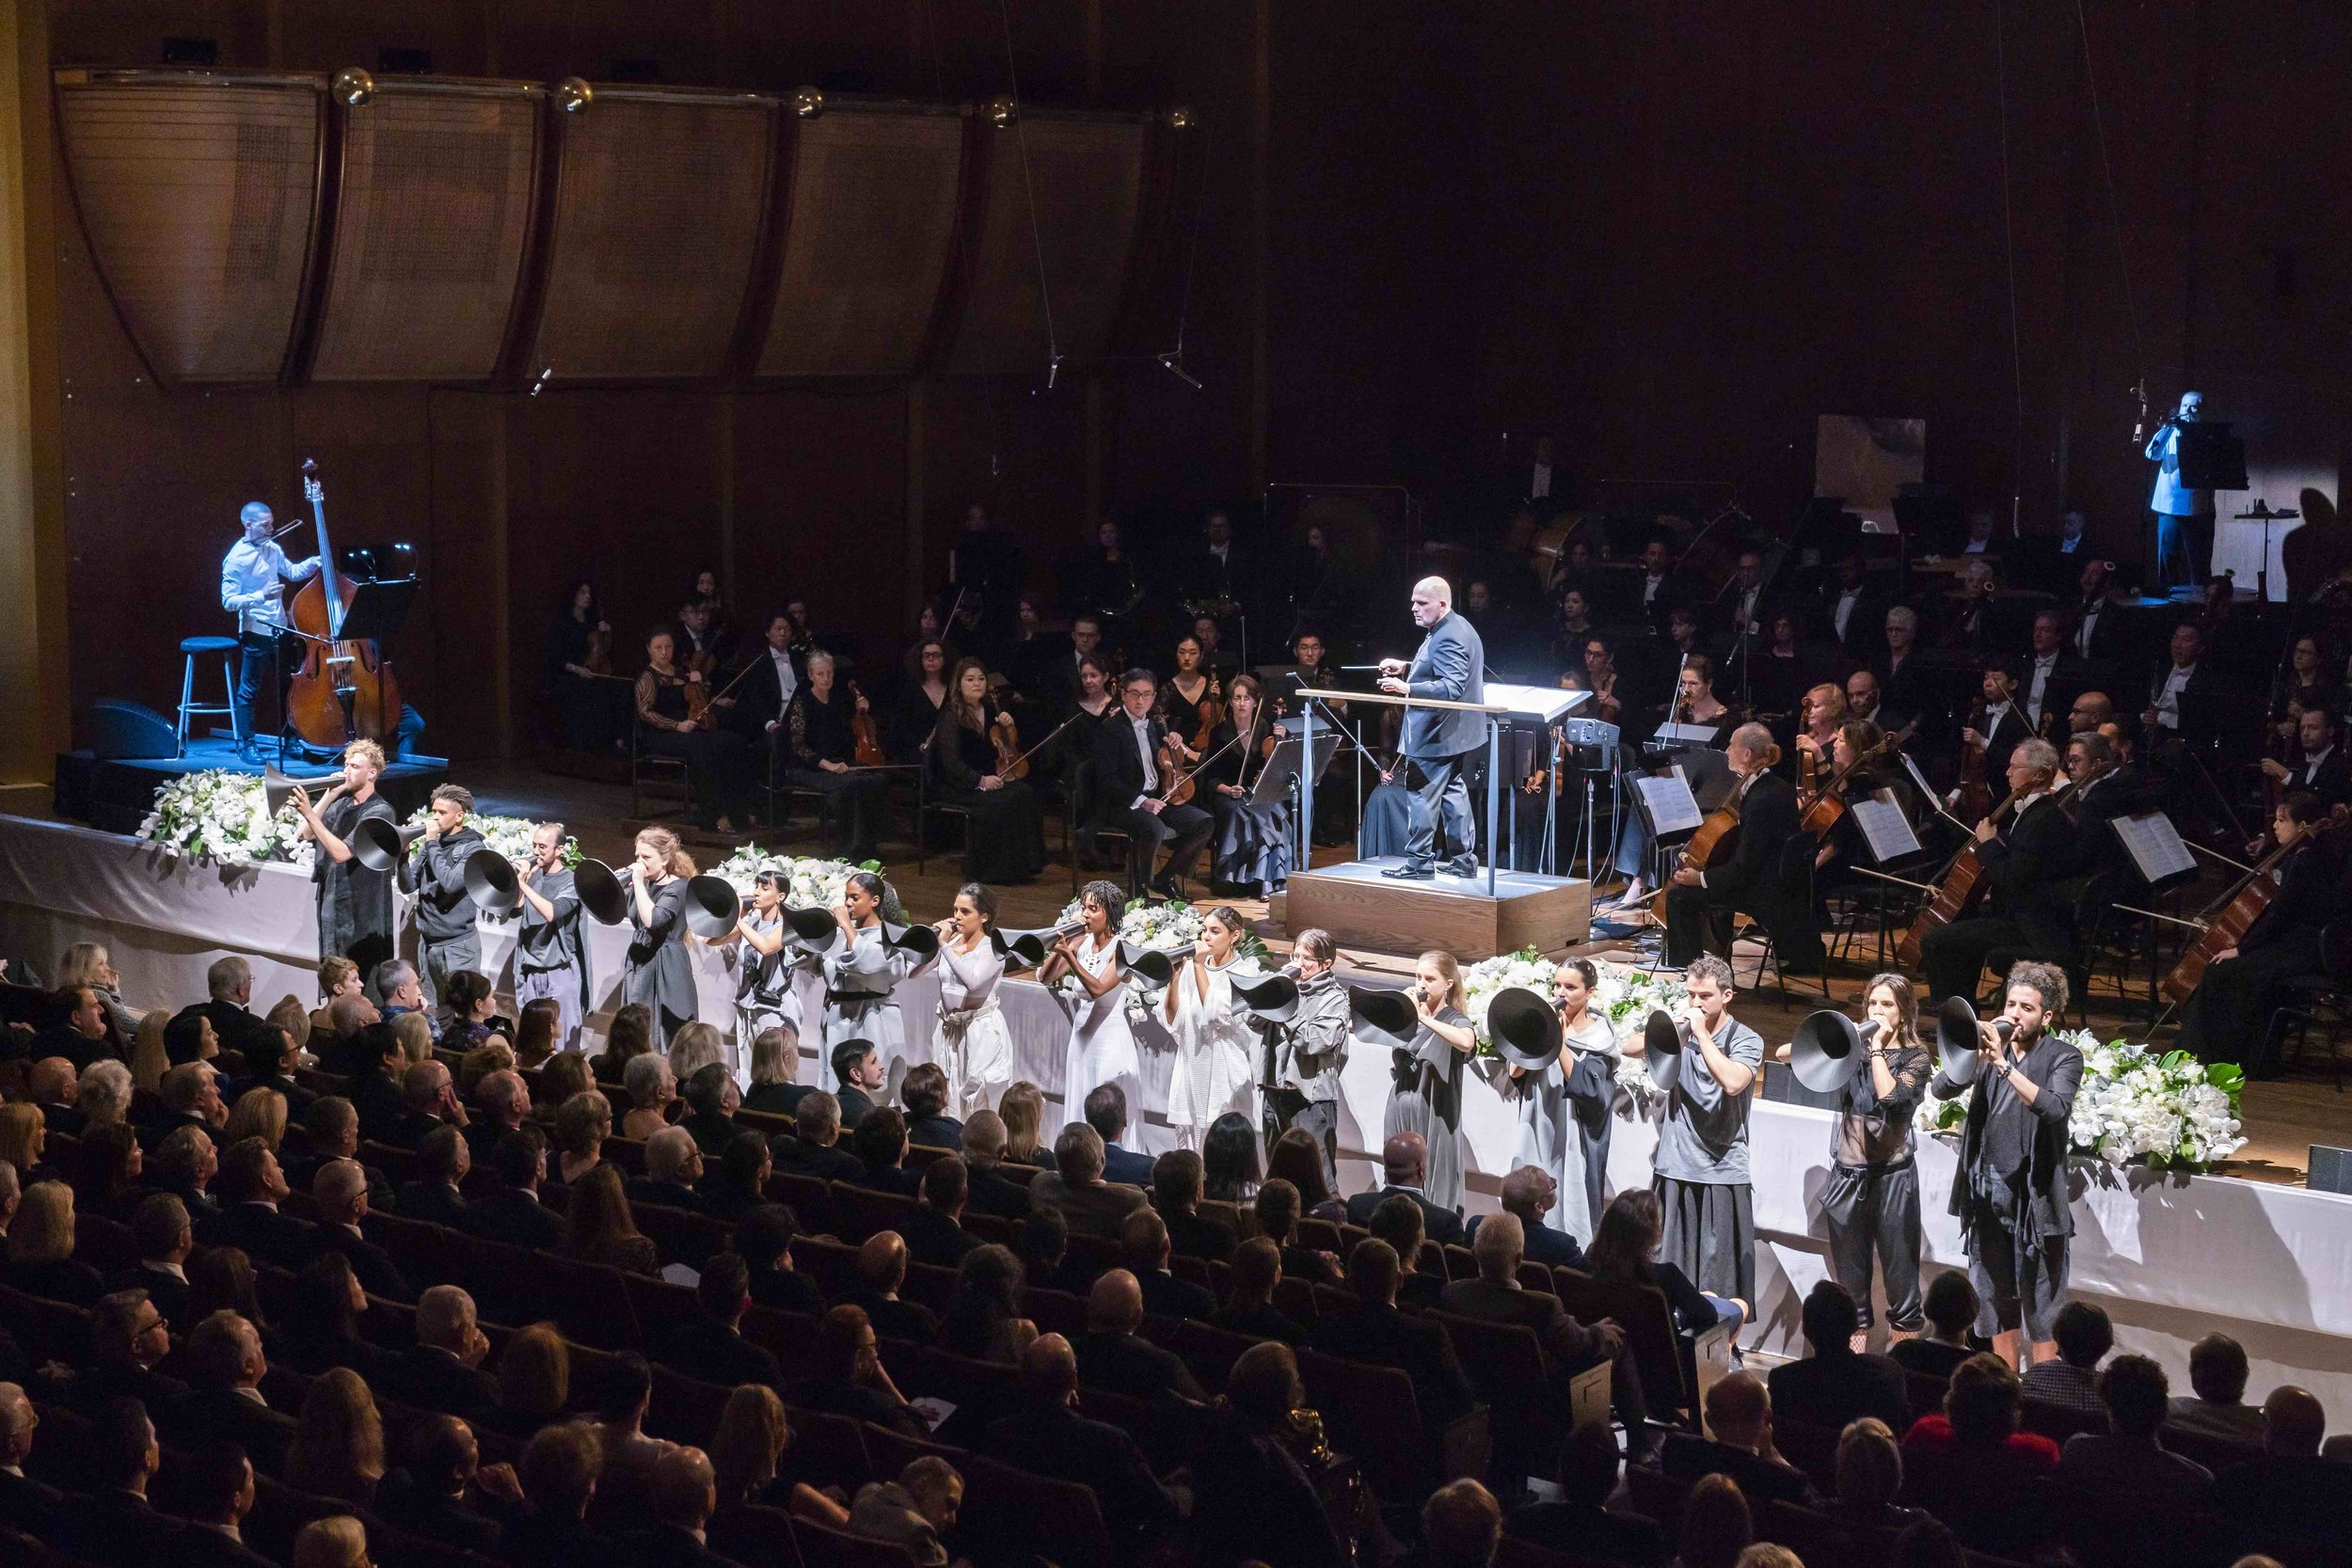 OPERA and MUSIC - Recent Credits: Ashley Fure's Filament at David Geffen Hall, as part of the program welcoming the New York Philharmonic's new conductor, Jaap van Zweden. Also, 21st Century Sound Stories, a trilogy of site-specific operas for Qubit, a contemporary music and performance art initiative.Marika also designs for Manhattan School of Music's Opera Department, including The Snow Maiden, and the upcoming Albert Herring.(Photo By CHRIS LEE, from Ashley Fure's Filament for the NY Philharmonic at Lincoln Center's David Geffen Hall)